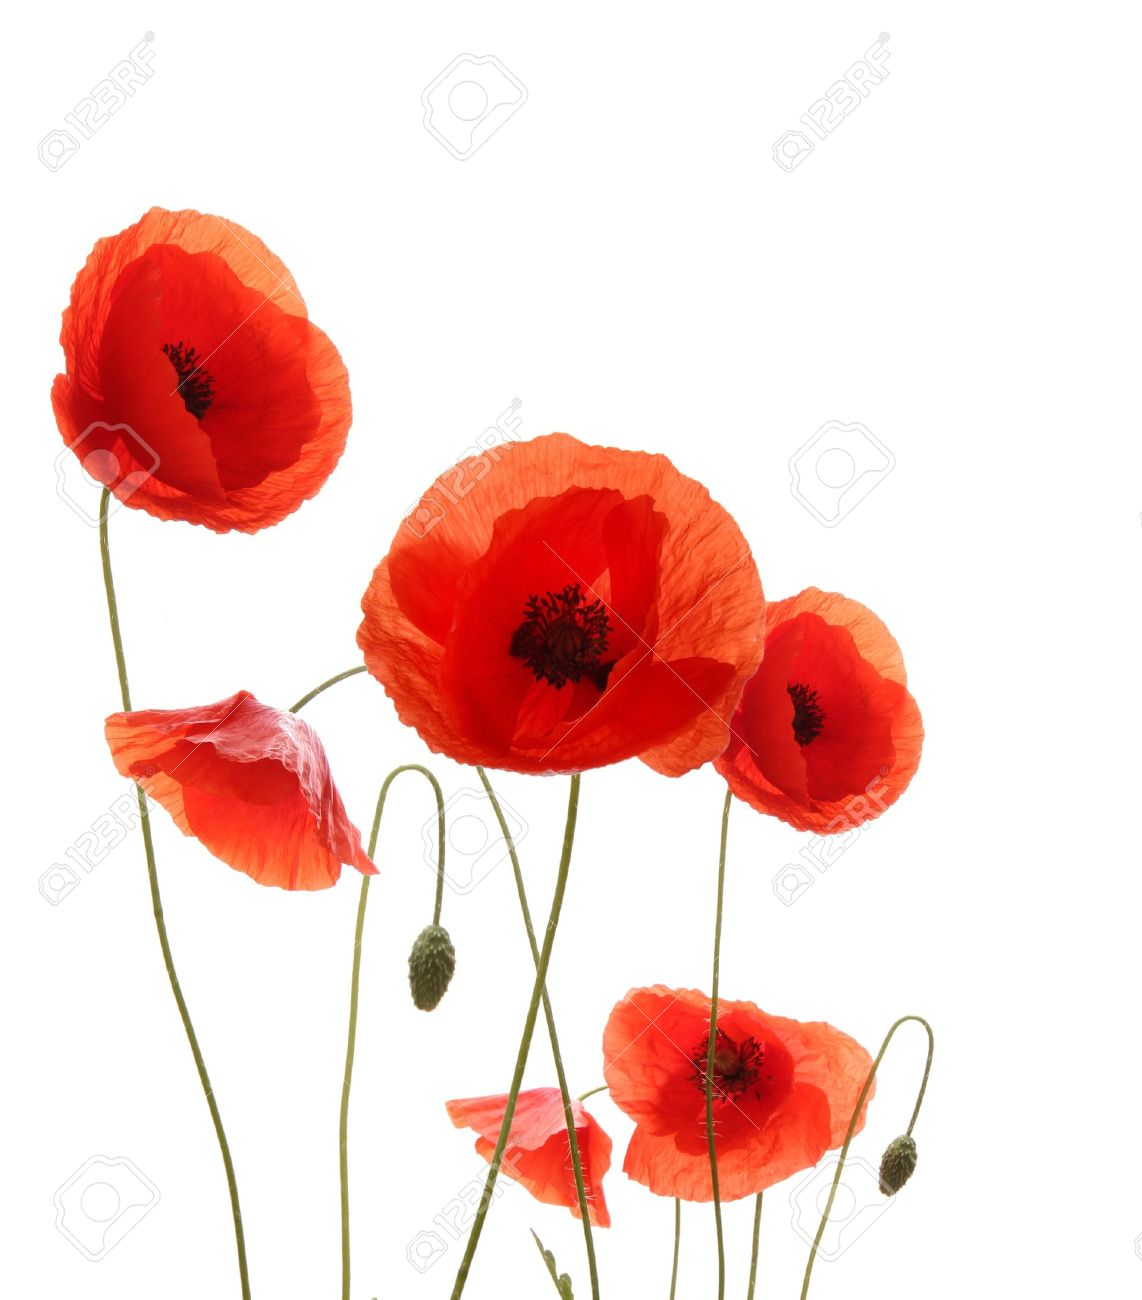 poppy flowers stock photos  pictures. royalty free poppy flowers, Beautiful flower